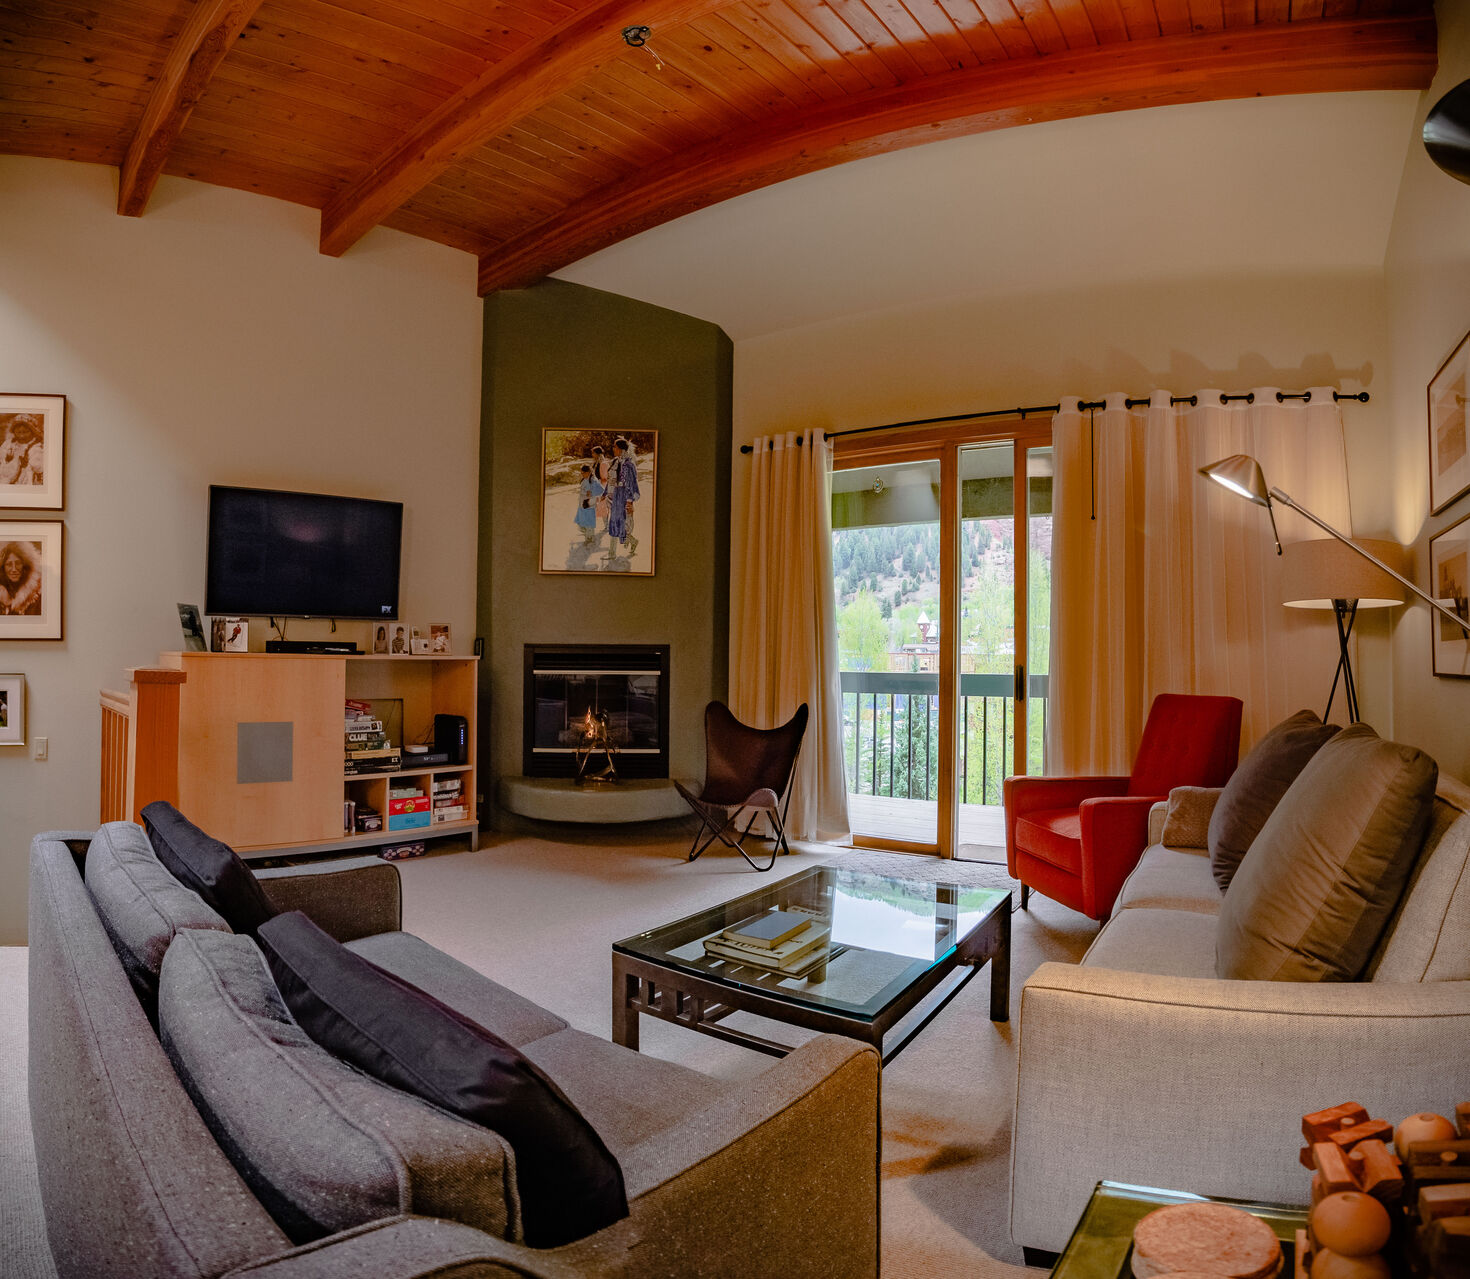 Living Area with Patio Access and Fireplace at Colorado Vacation Cabin